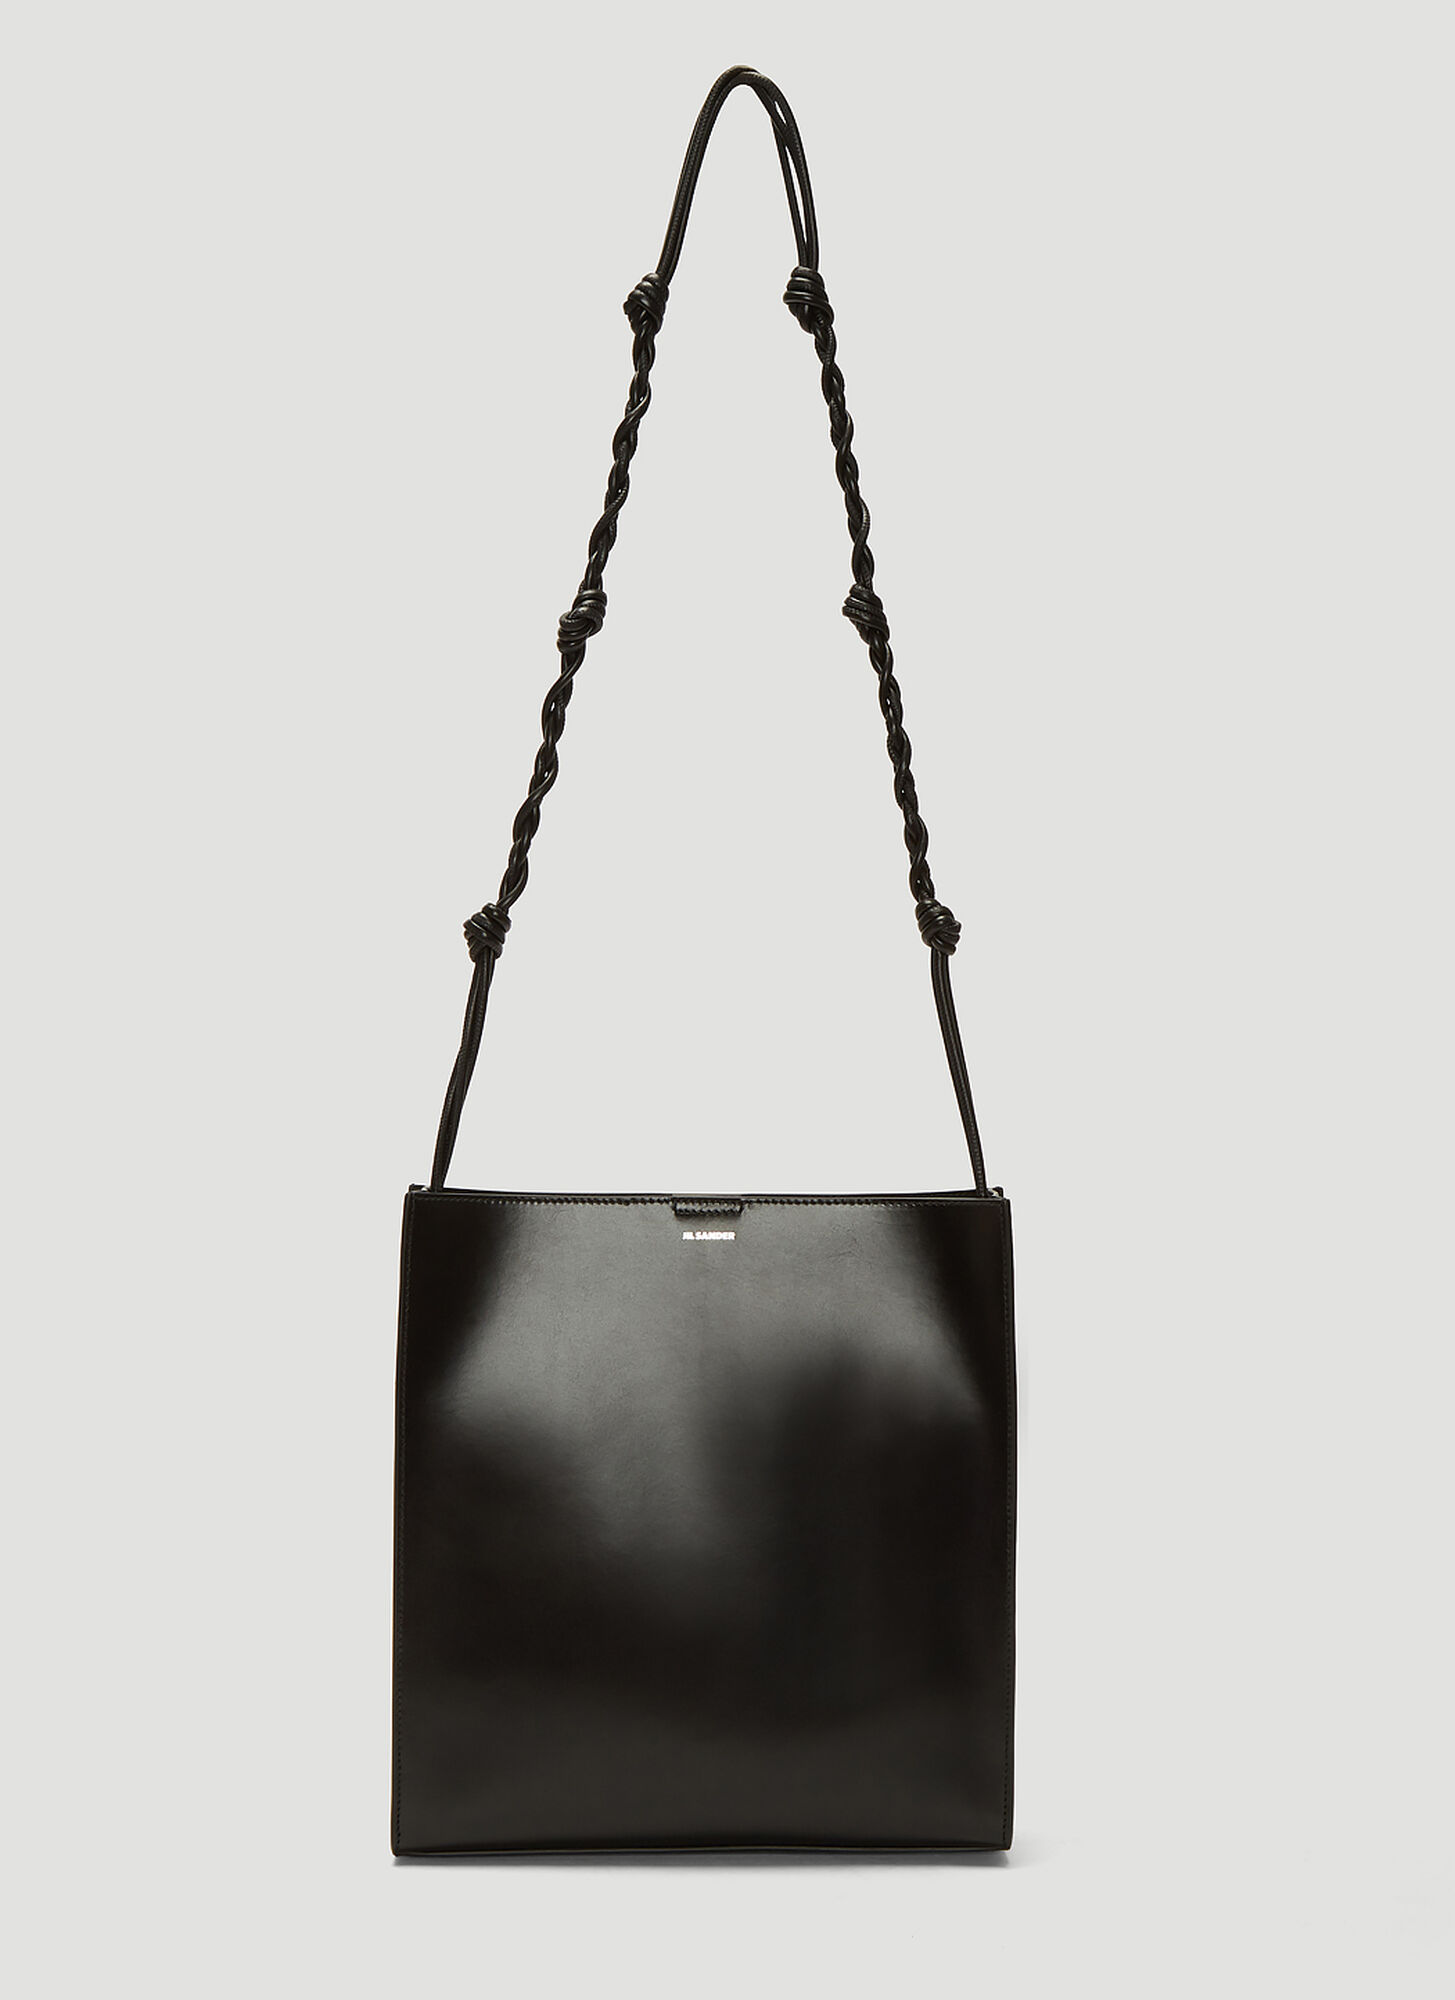 Jil Sander Medium Tangle Leather Bag in Black